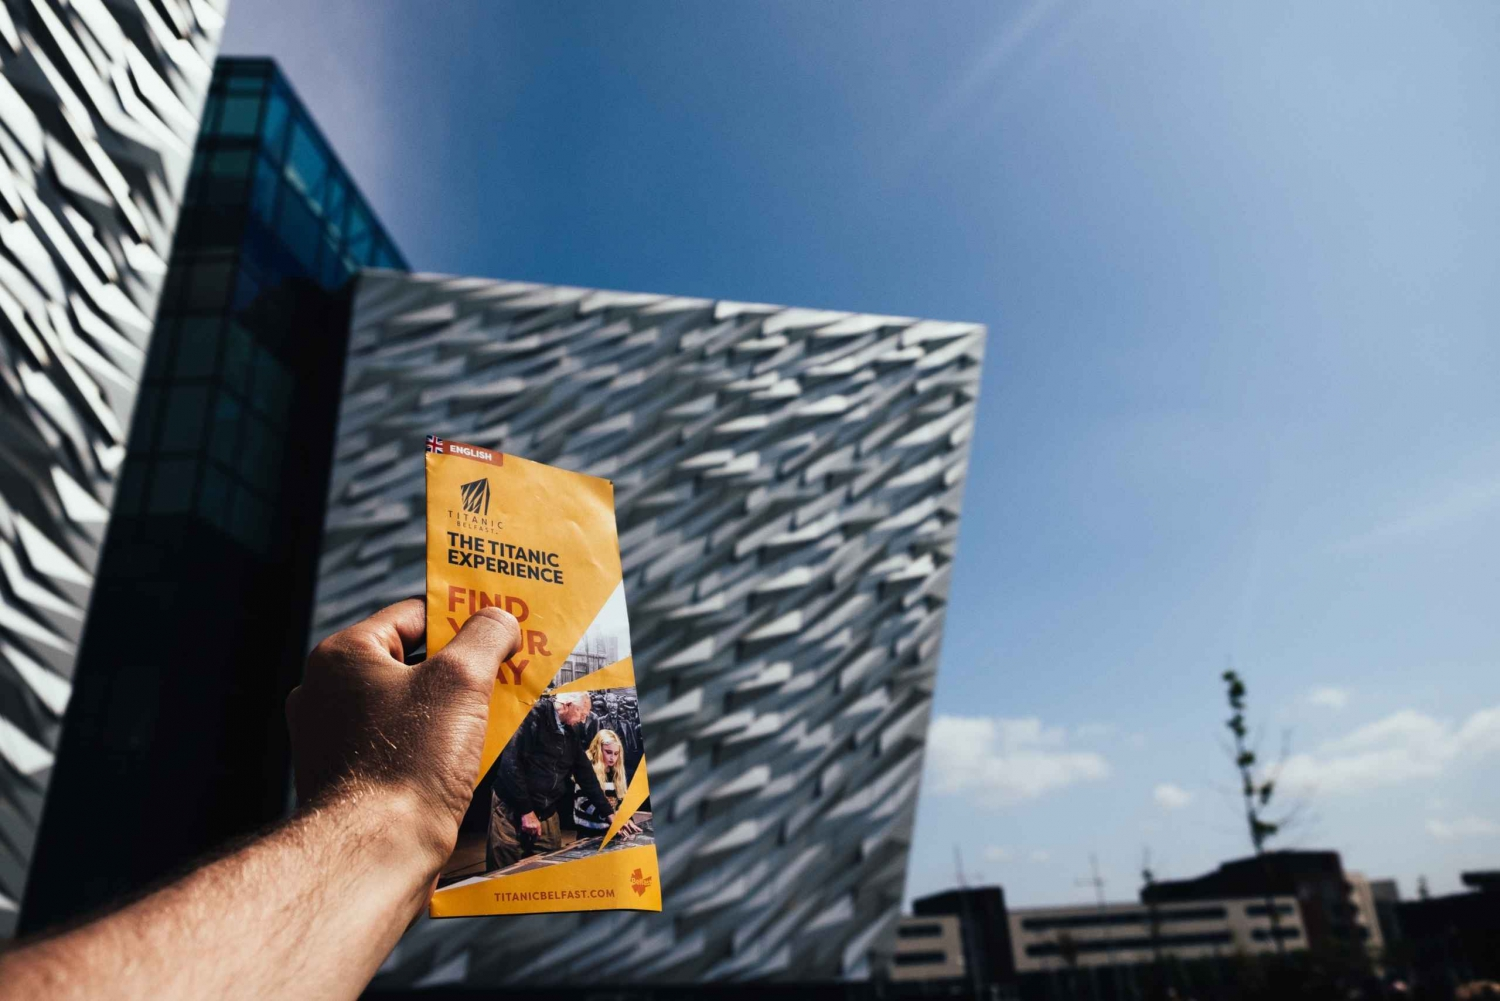 From 3-Day Discover Northern Ireland Tour